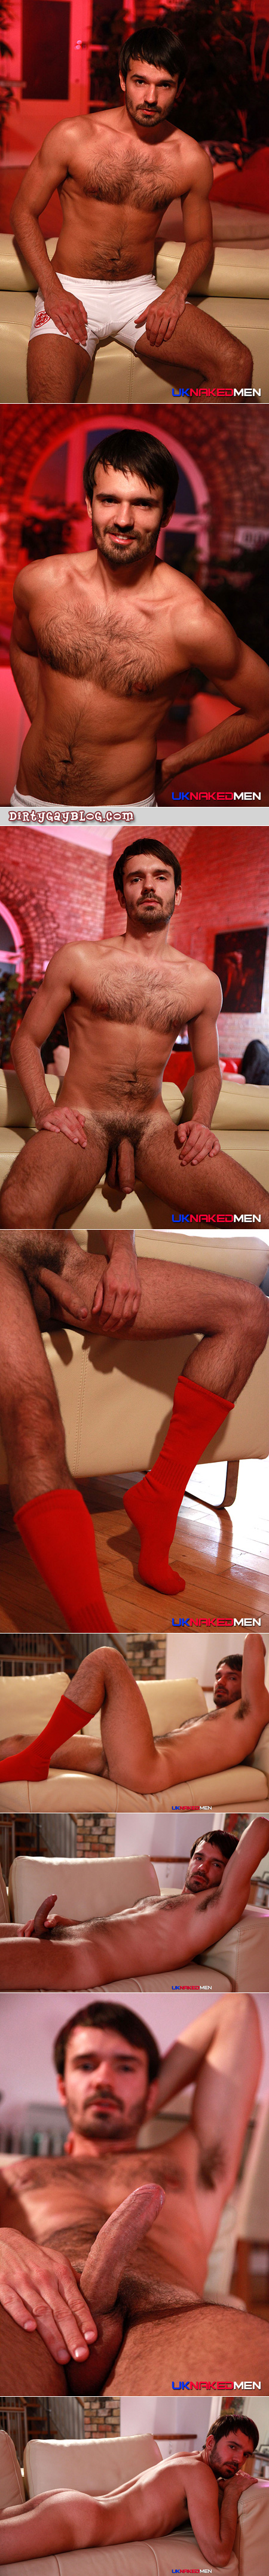 Scruffy uncut otter gets out of his athletic shorts and pops a boner in his OTC soccer socks.